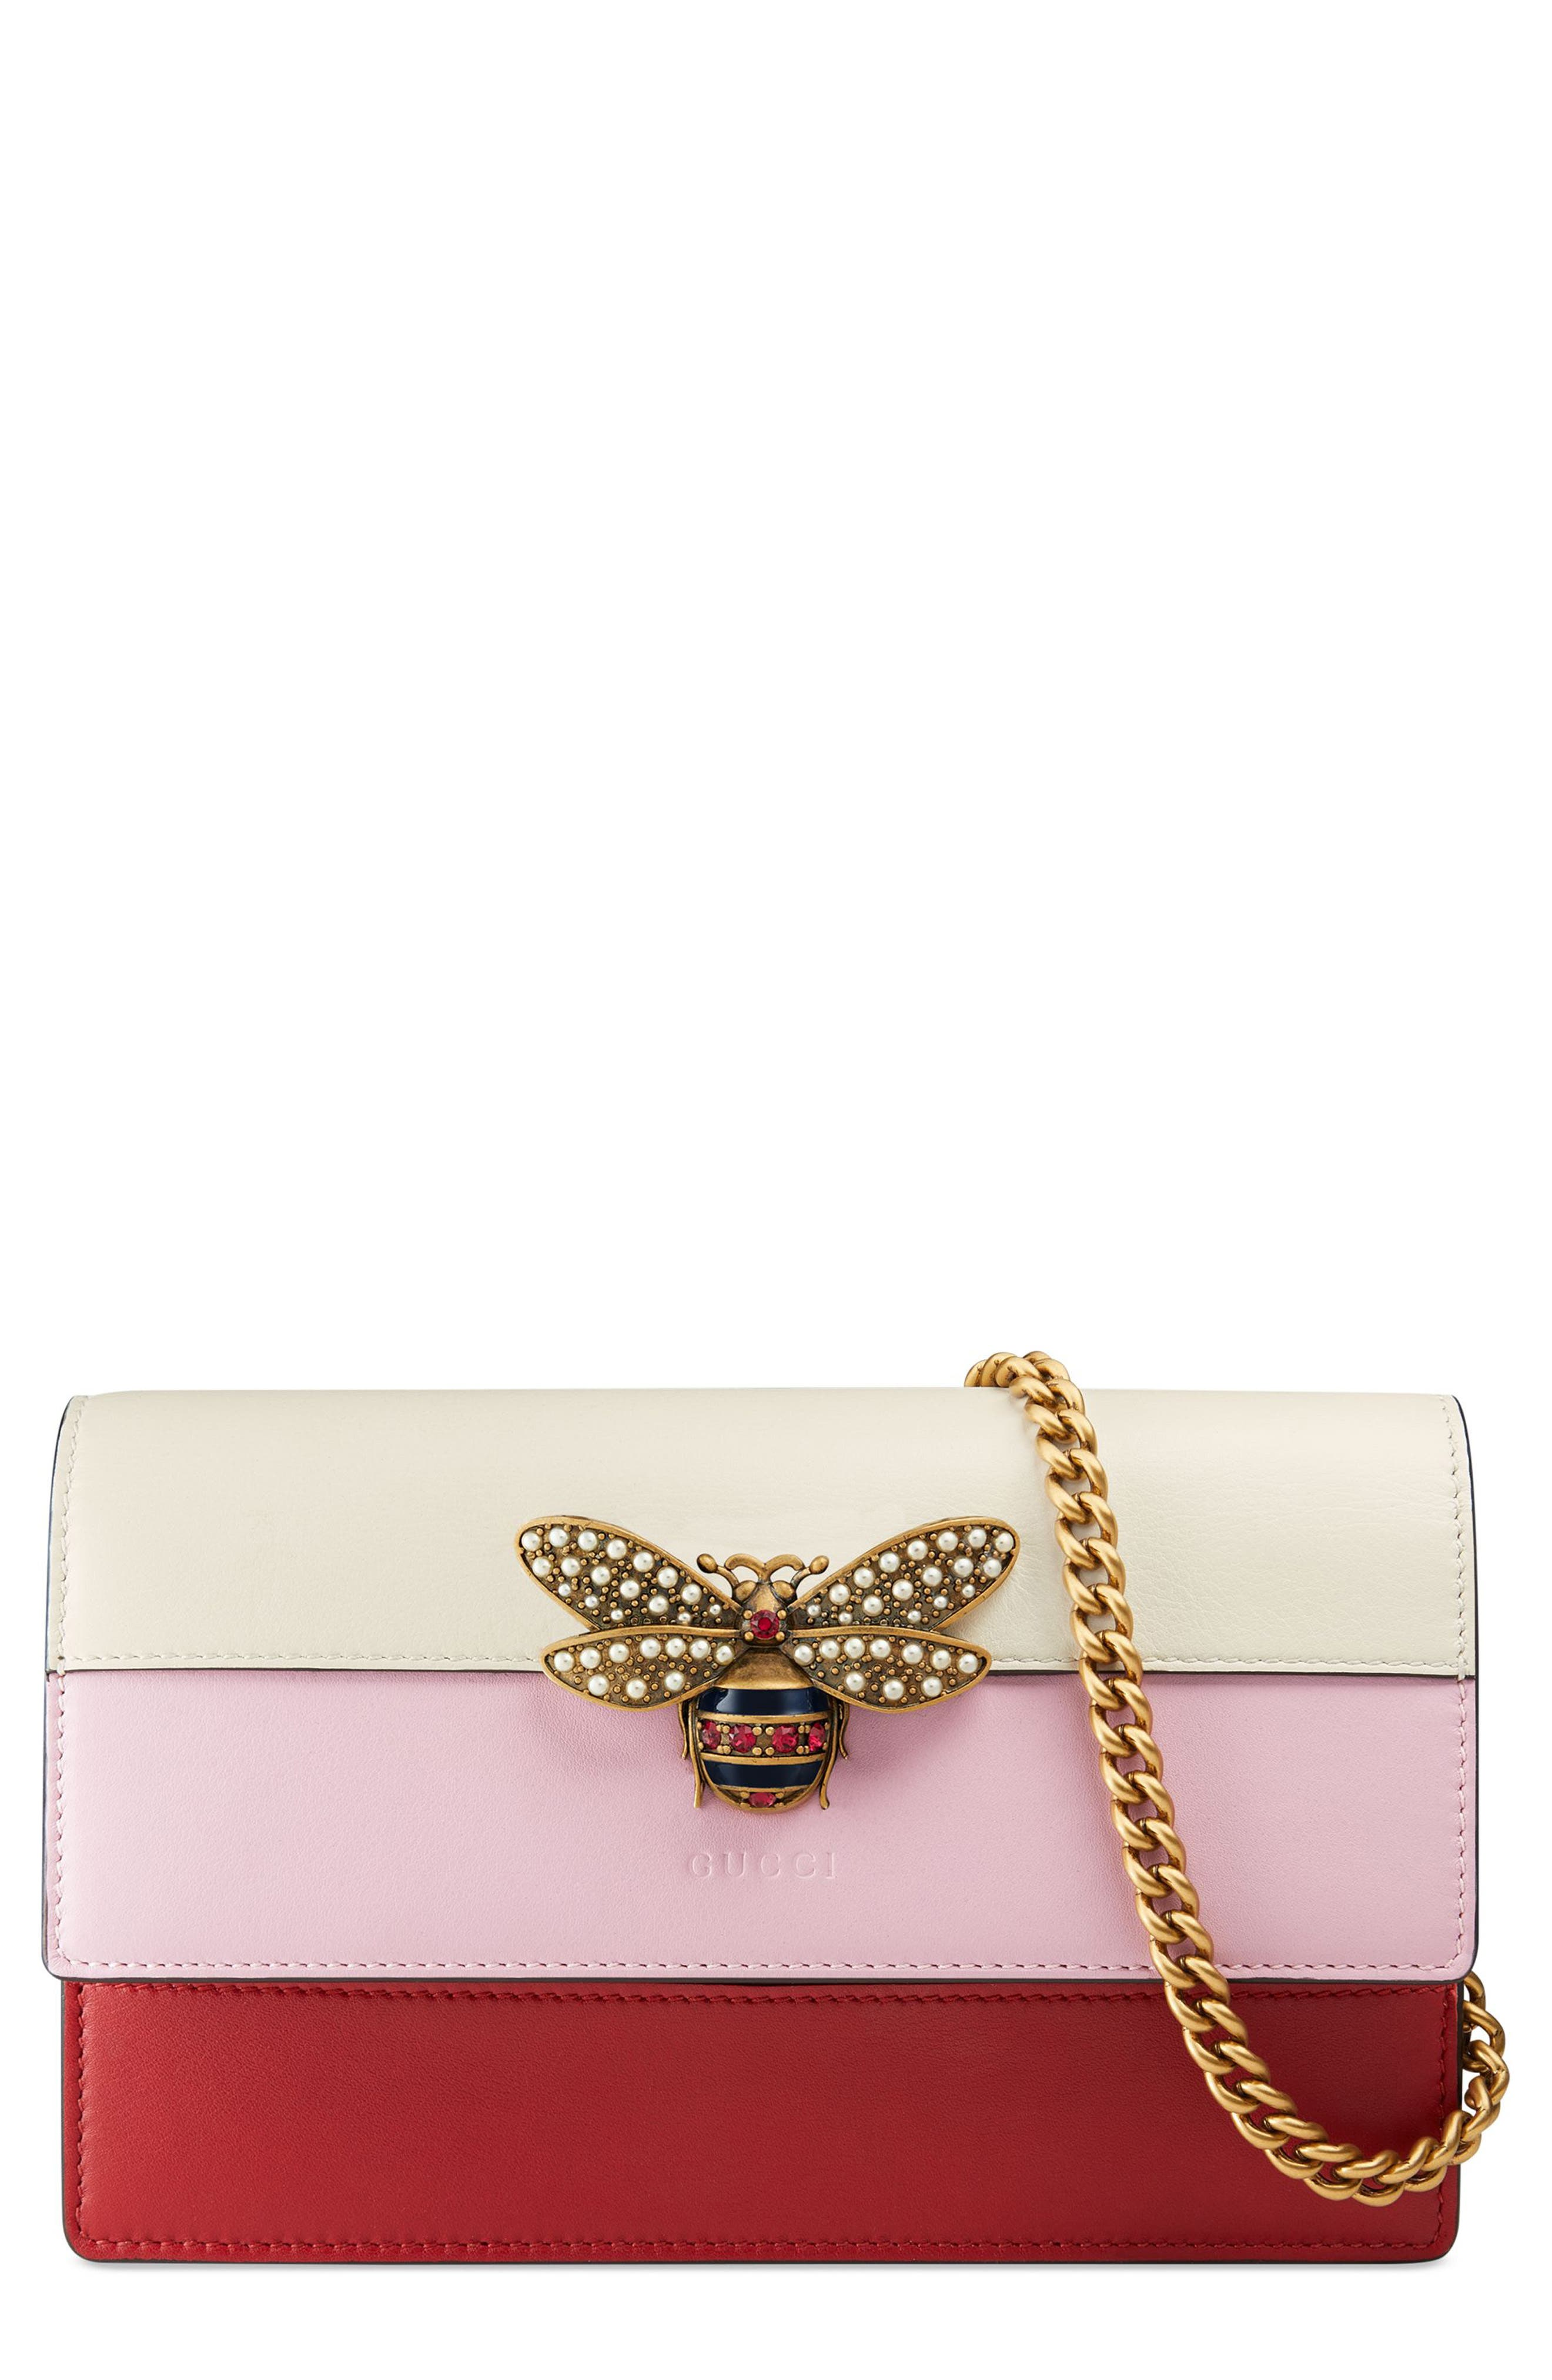 Alternate Image 1 Selected - Gucci Mini Bee Multistripe Leather Shoulder Bag